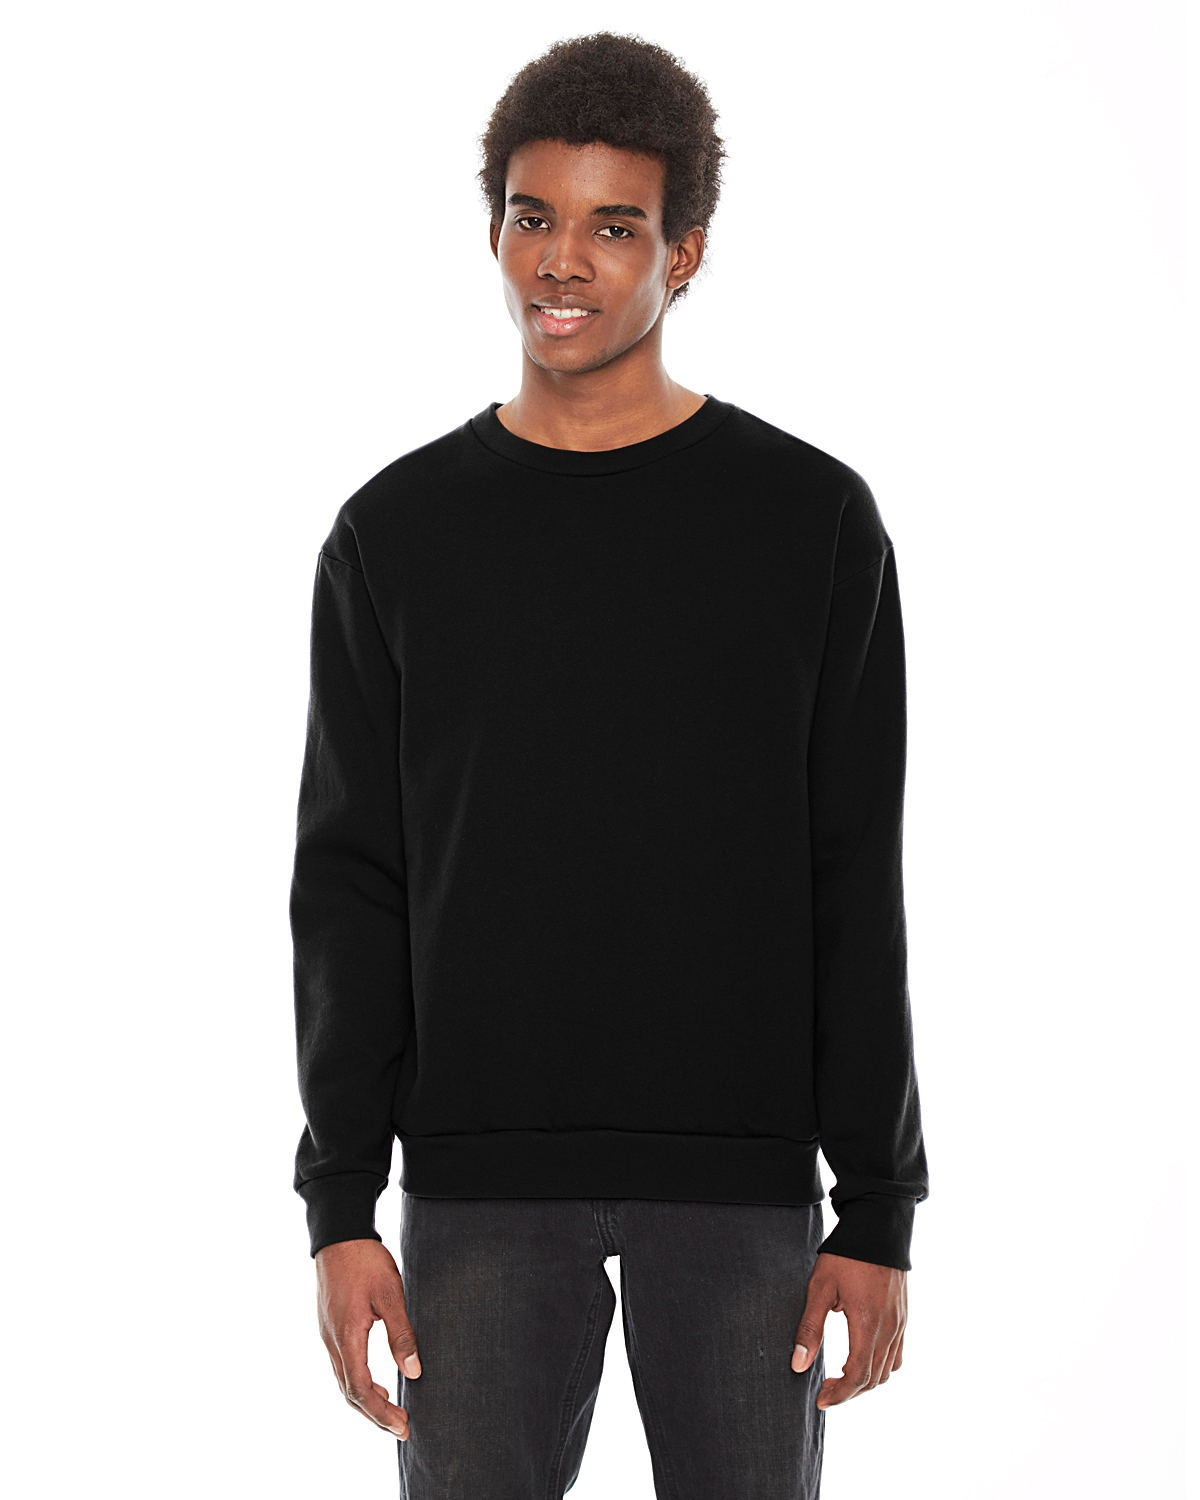 American Apparel F496W - Unisex Flex Fleece Drop Shoulder ...